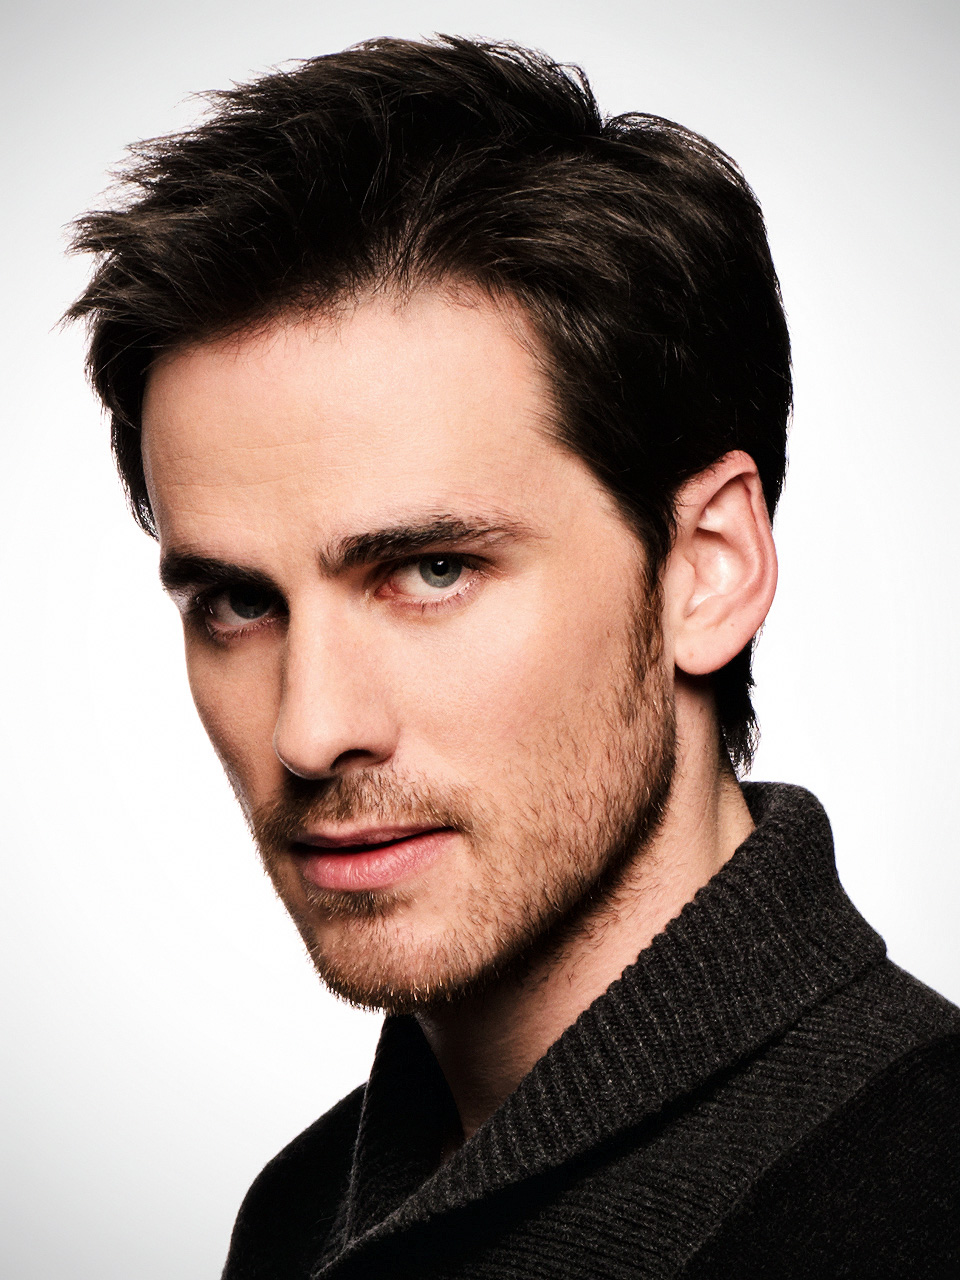 Who is hook on once upon a time